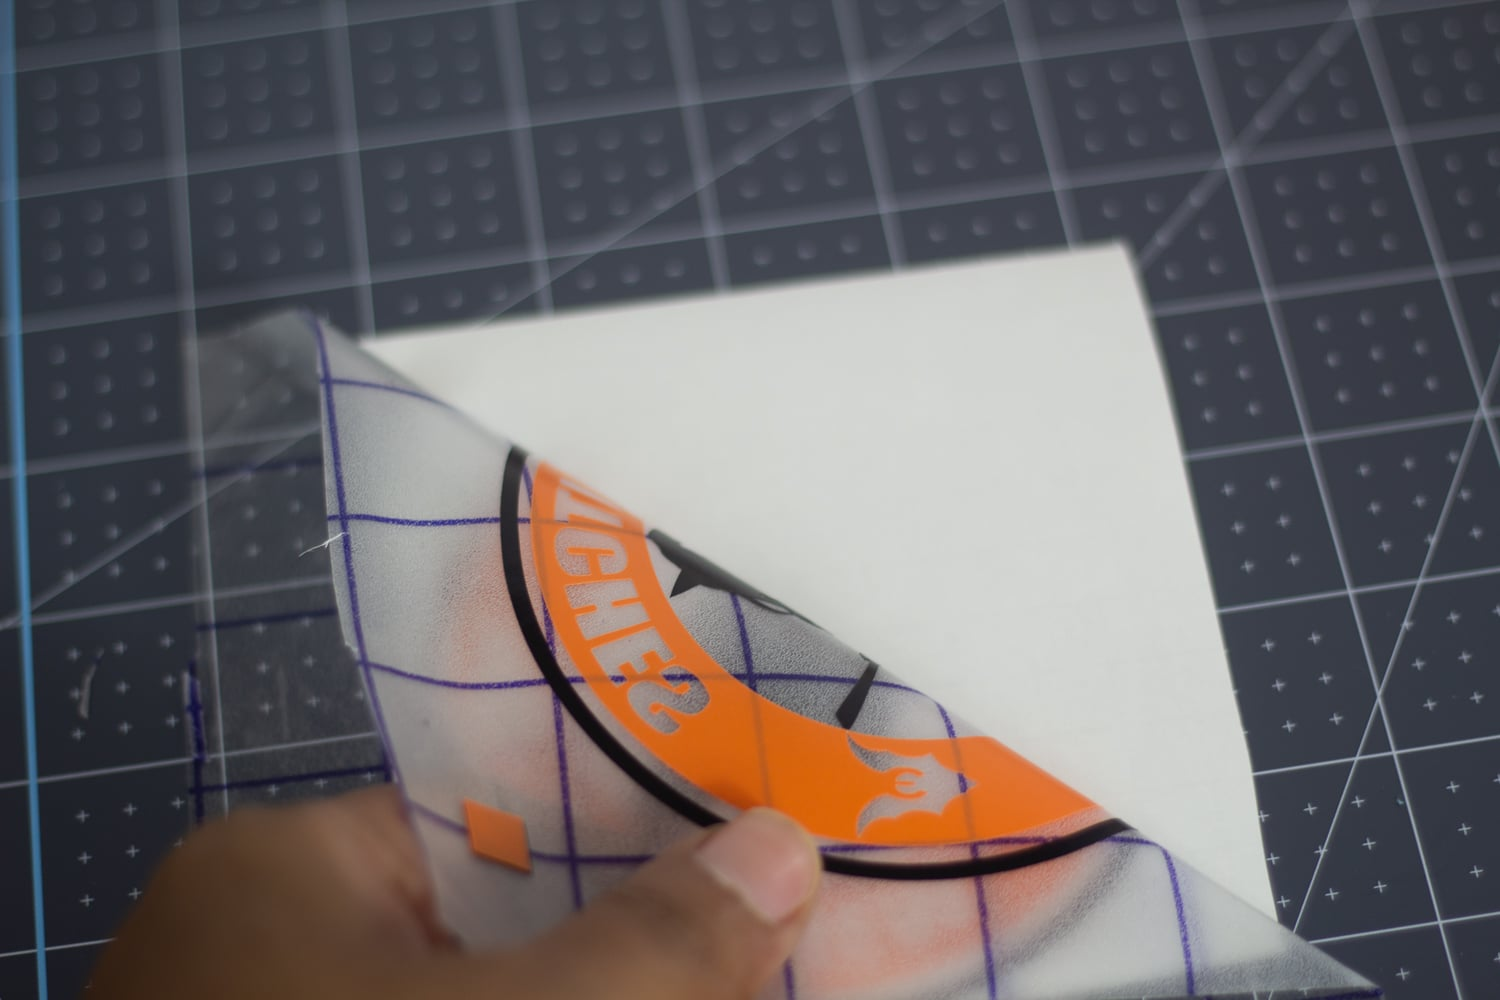 peeling adhesive vinyl from paper backing